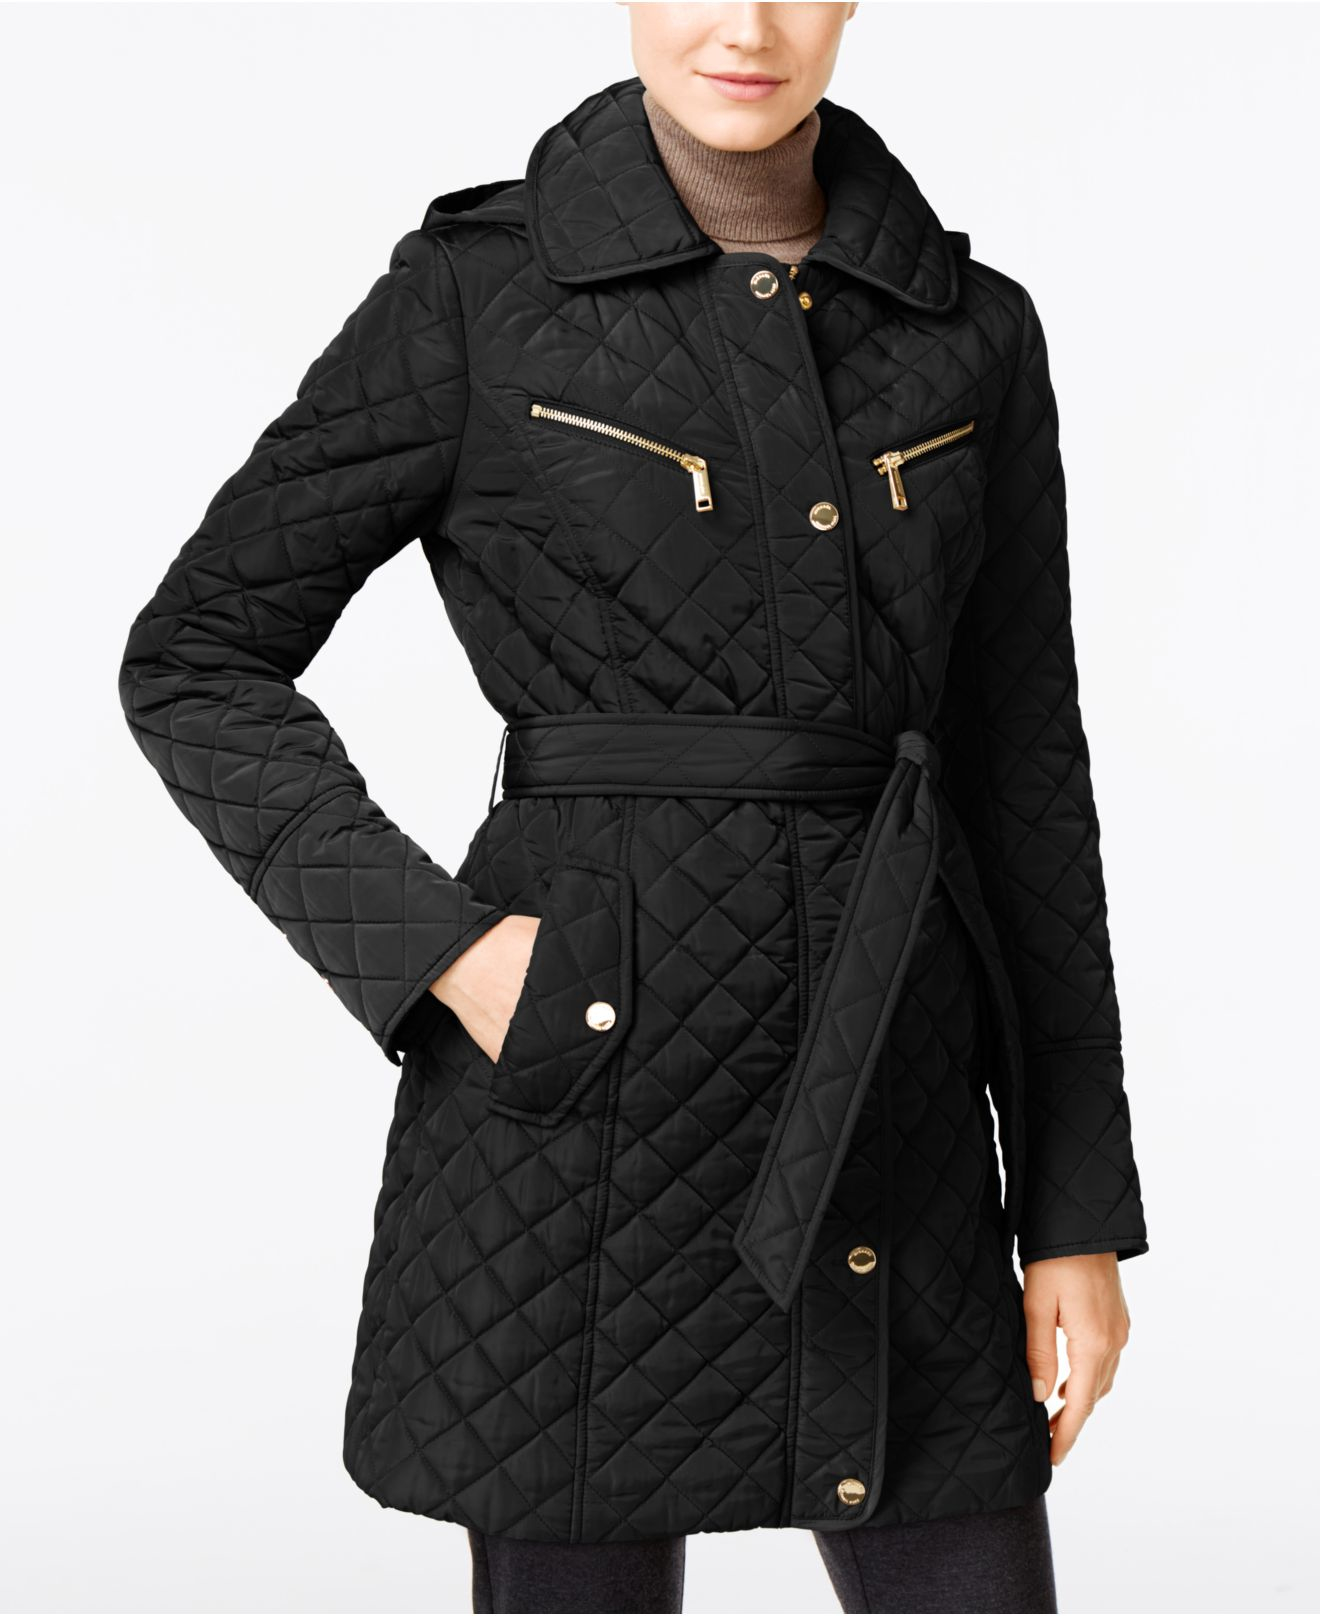 Save $$$ and get the best Clothing & Accessories prices with Slickdeals. From Amazon, eBay, JomaShop, Ashford, Macy's, Groupon, Costco Wholesale, Rakuten, and more, get the latest discounts, coupons, sales and shipping offers. Compare deals on Clothing & Accessories now >>>.